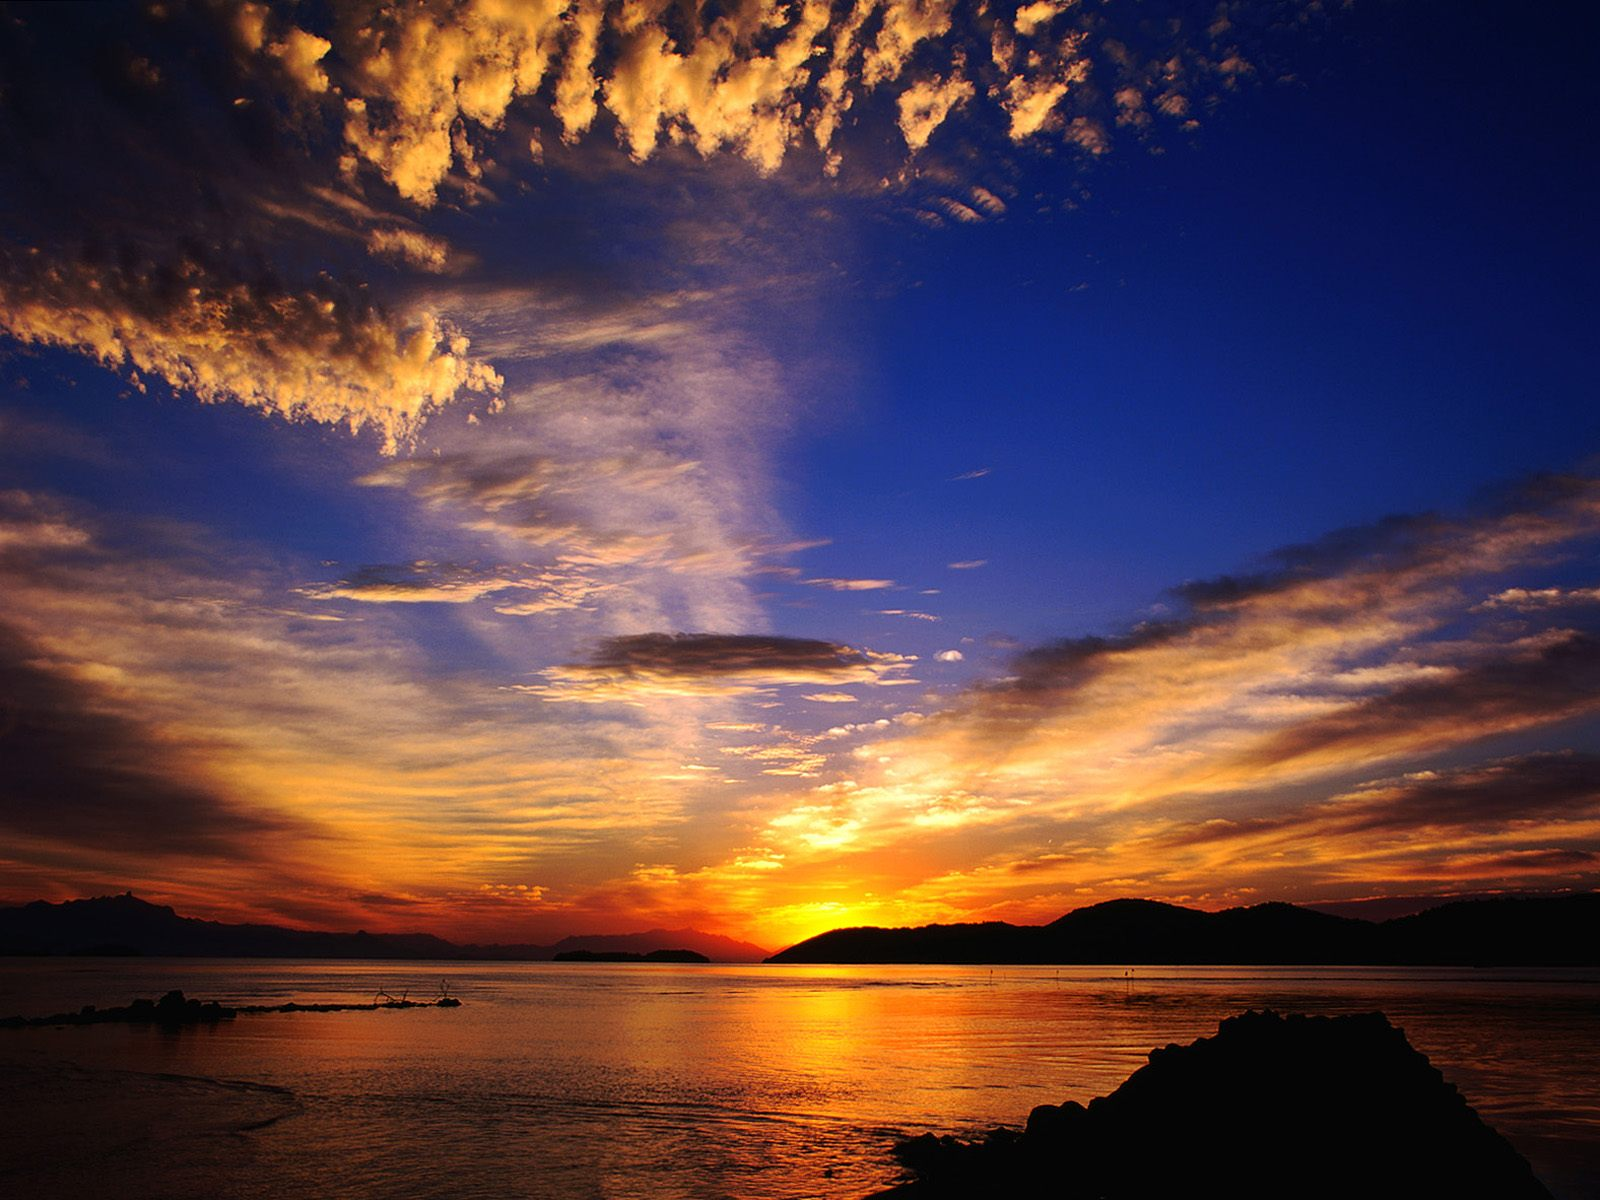 Sunset Wallpapers HD For Desktop